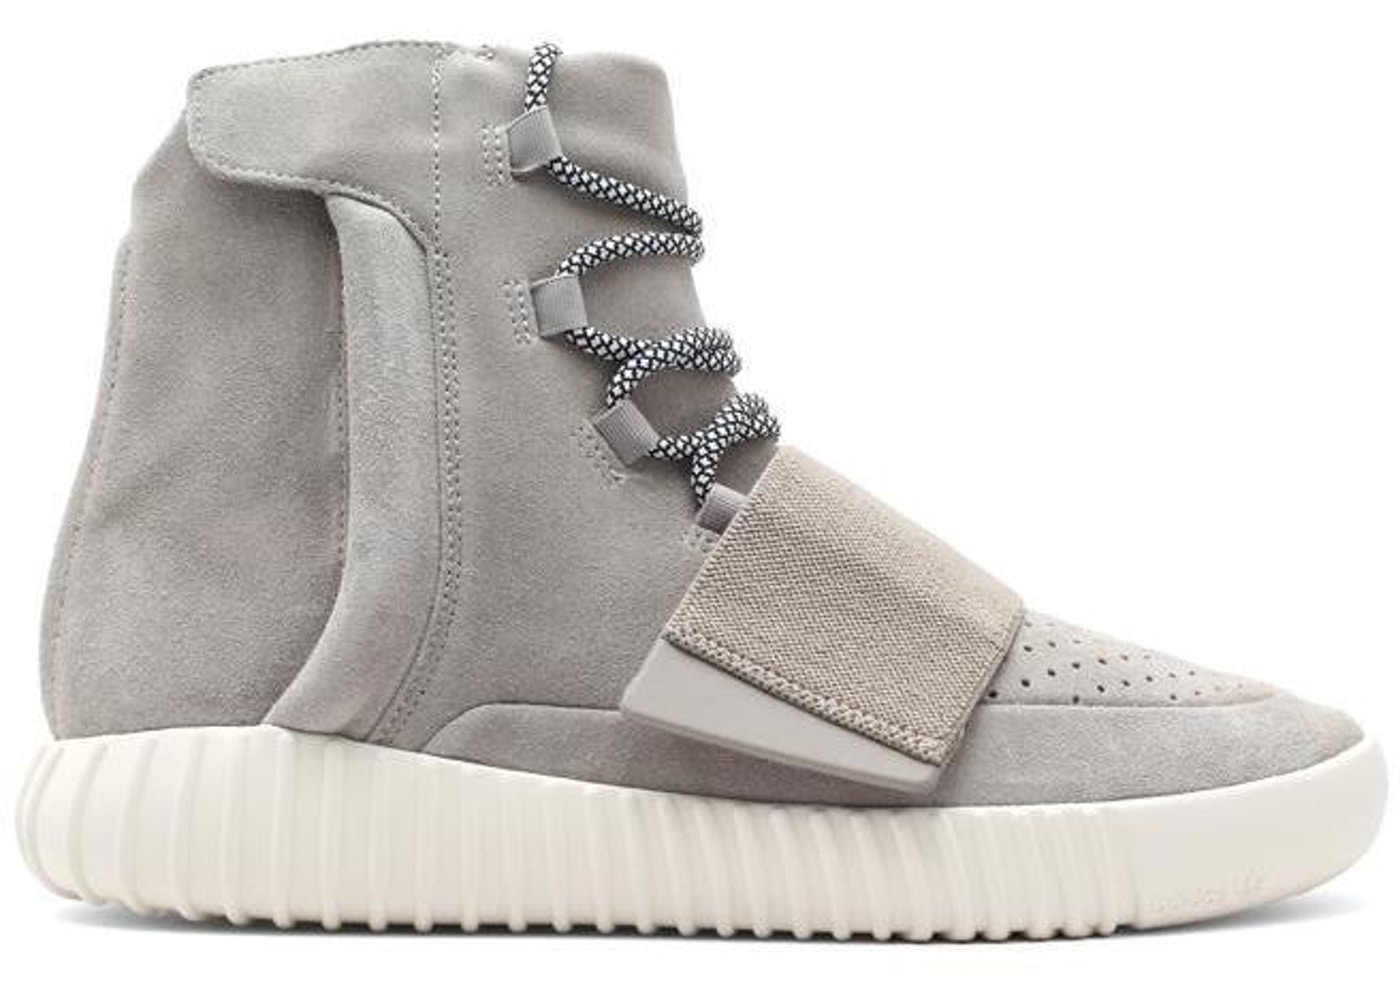 exquisite style hot sale online on feet at adidas Yeezy Boost 750 OG Light Brown